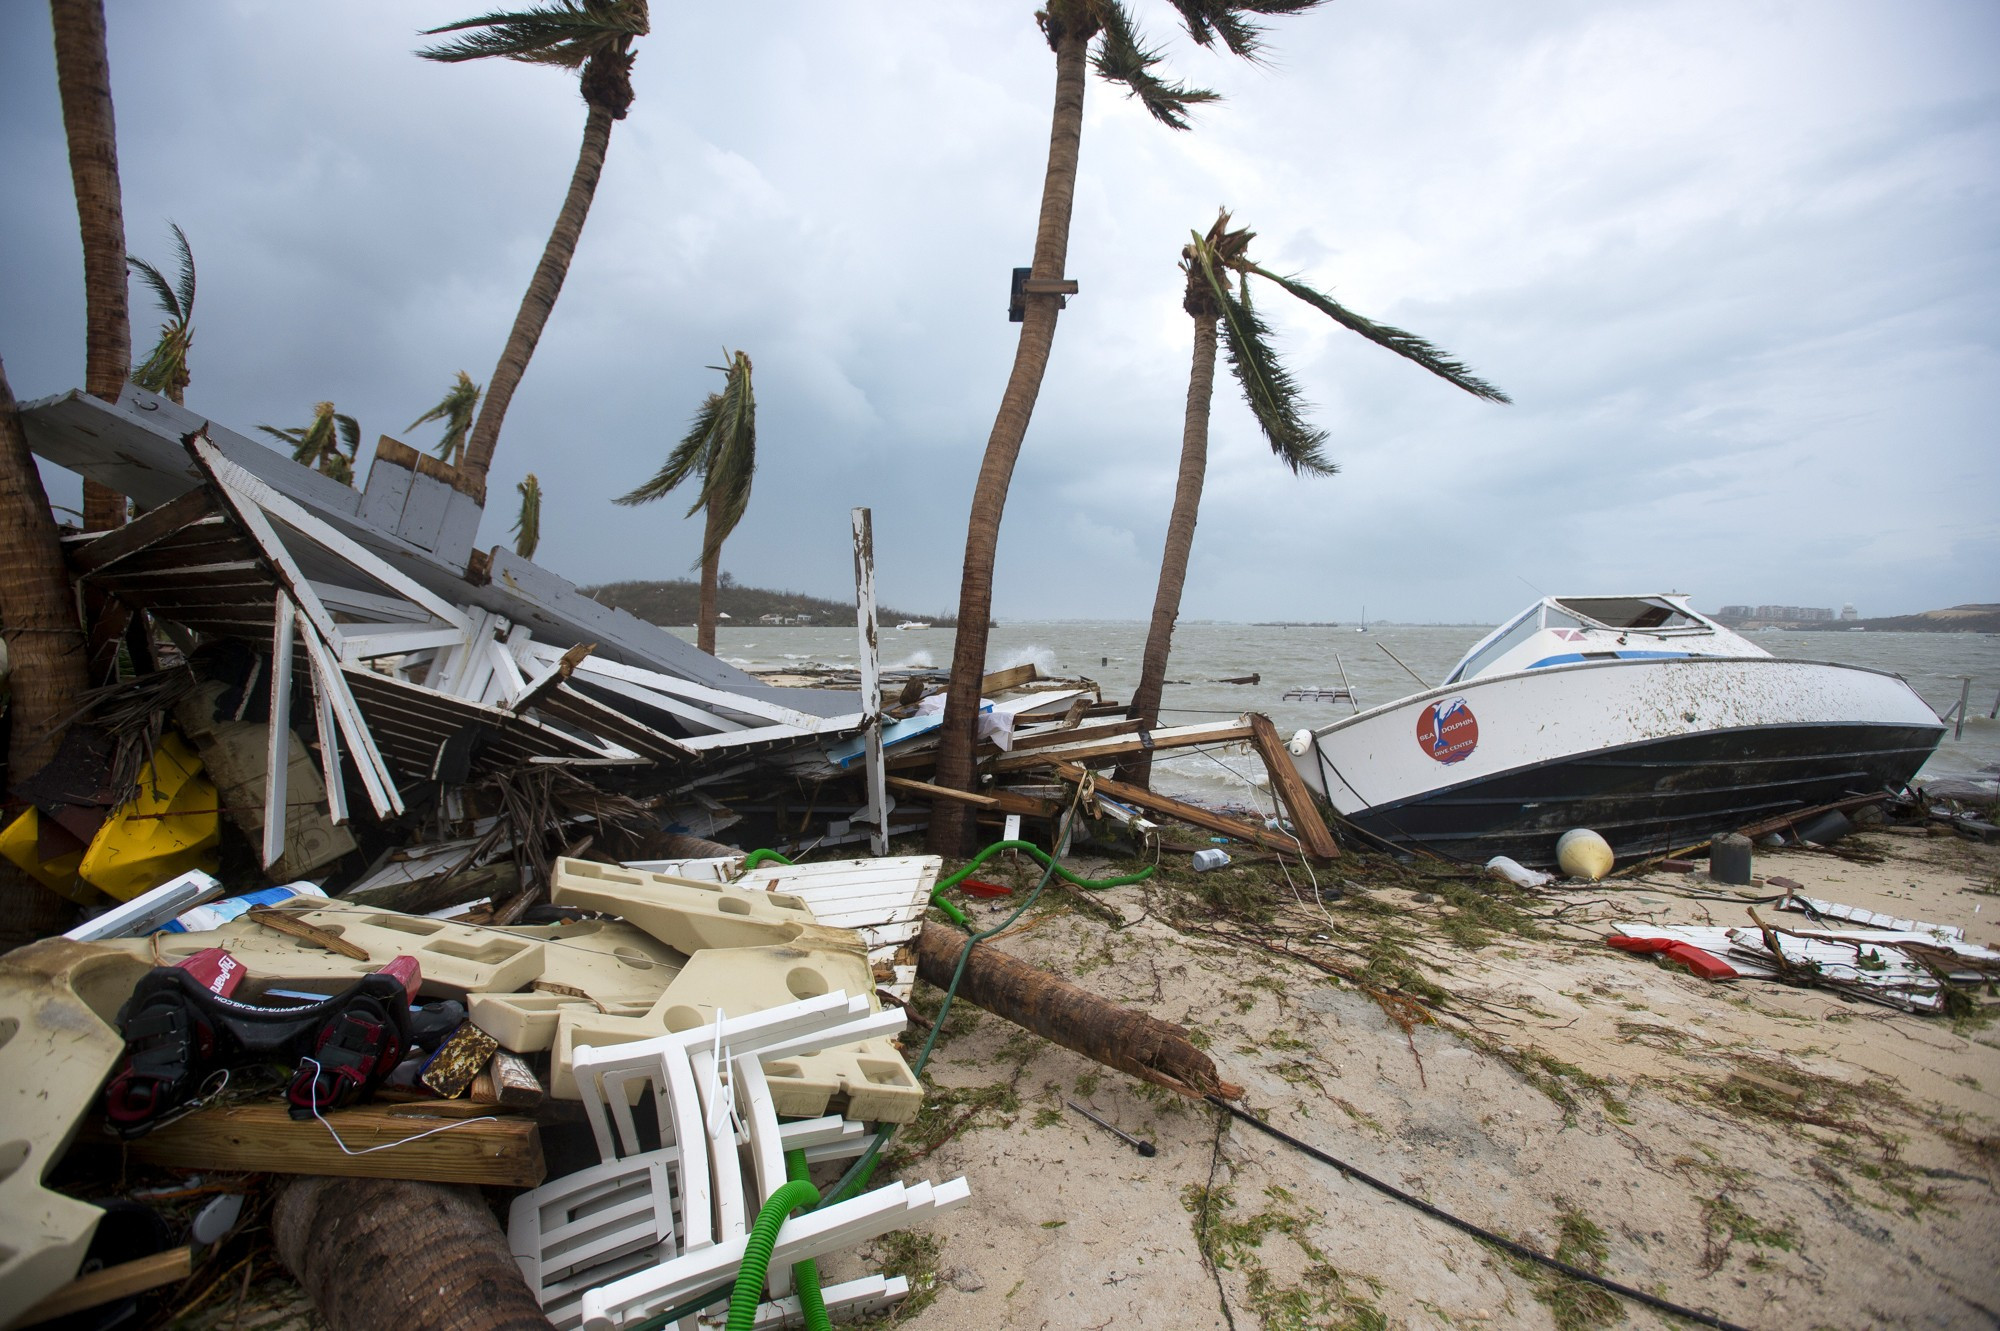 At least 20 people are known to have died so far across the Caribbean ©Getty Images